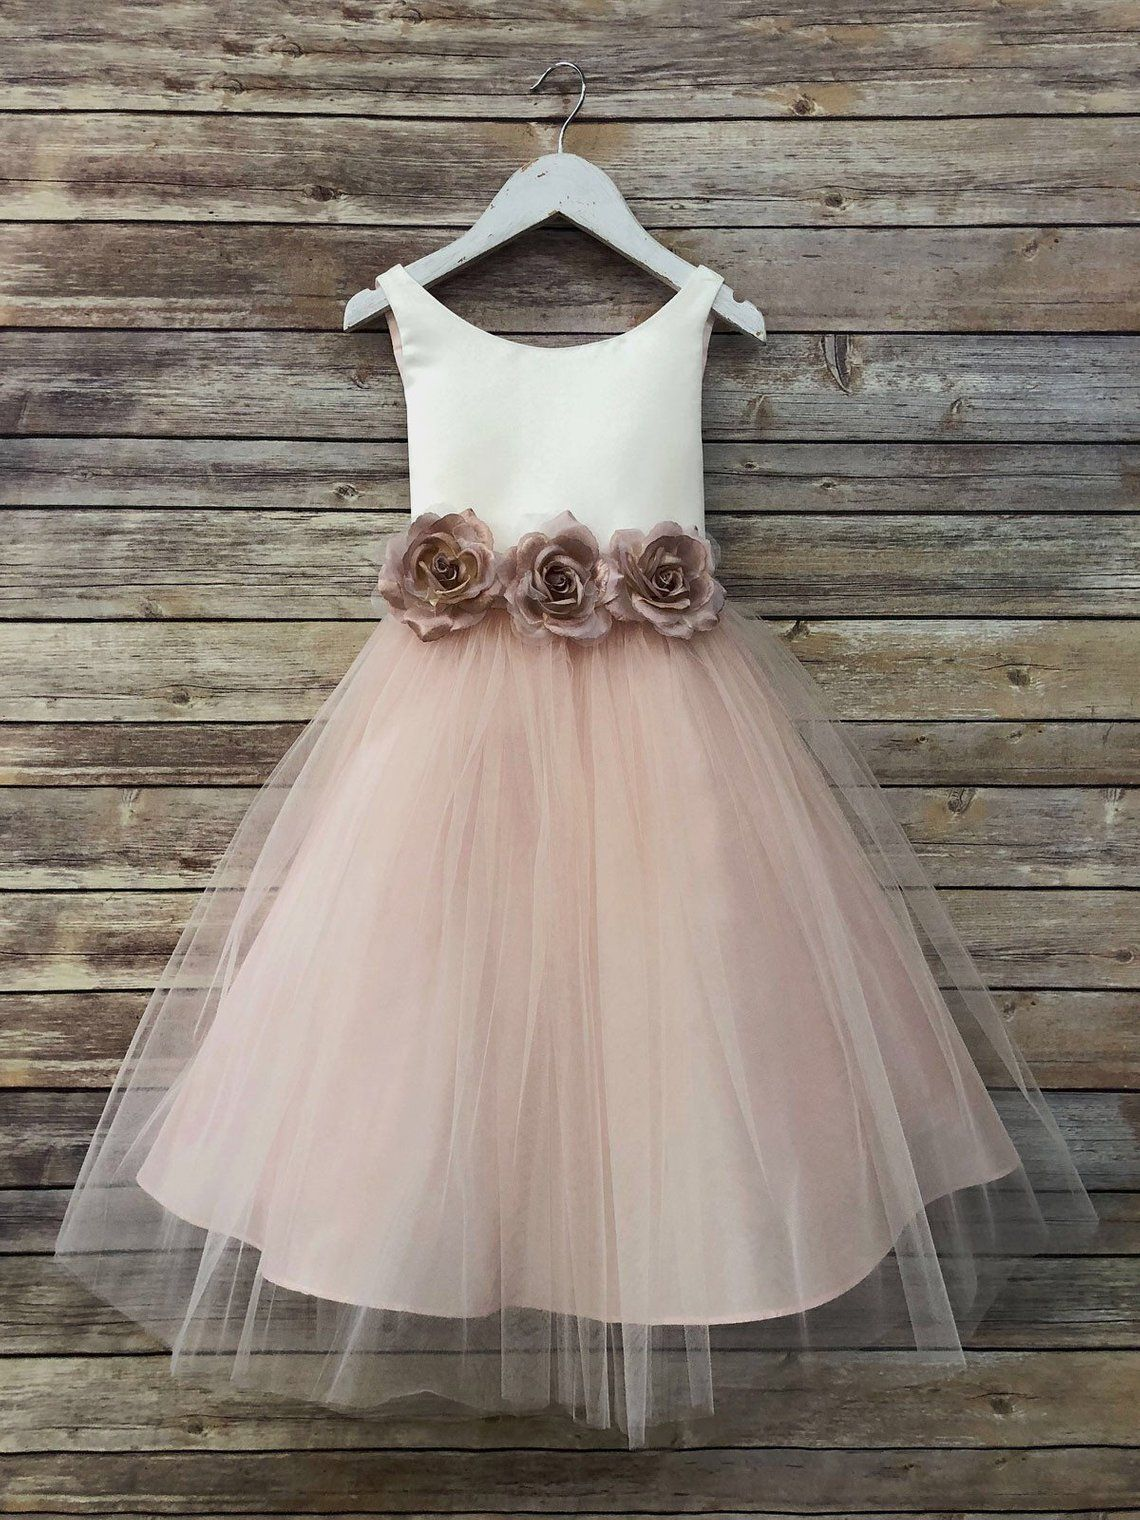 c30f648e0c30 Tulle overlay Flower Girl Dress with Pin on Silk Flowers, Three ...